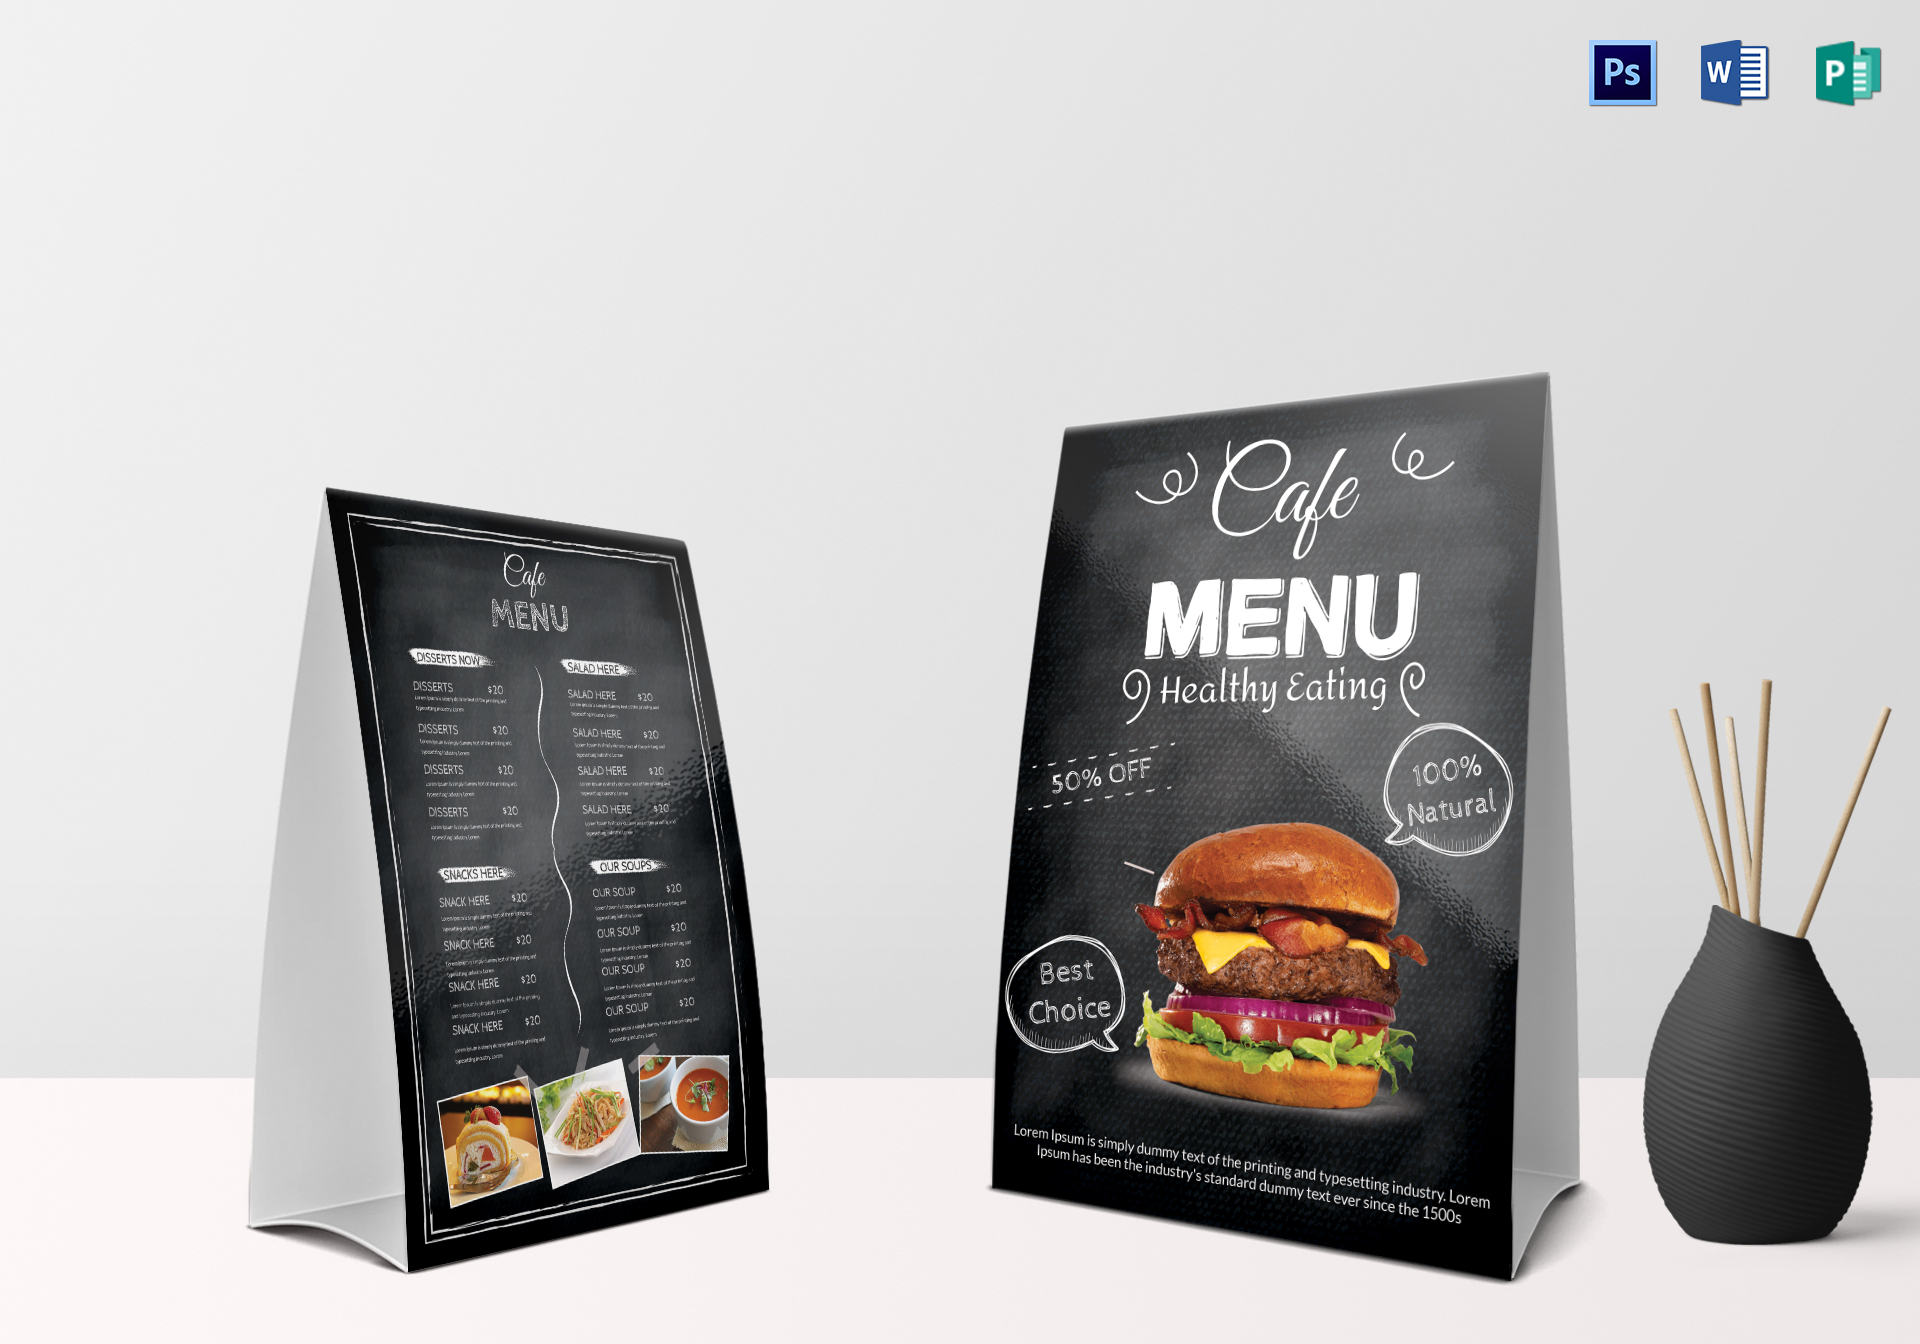 Black Cafe Menu Table Tent Template & Black Cafe Menu Table Tent Design Template in PSD Word Publisher